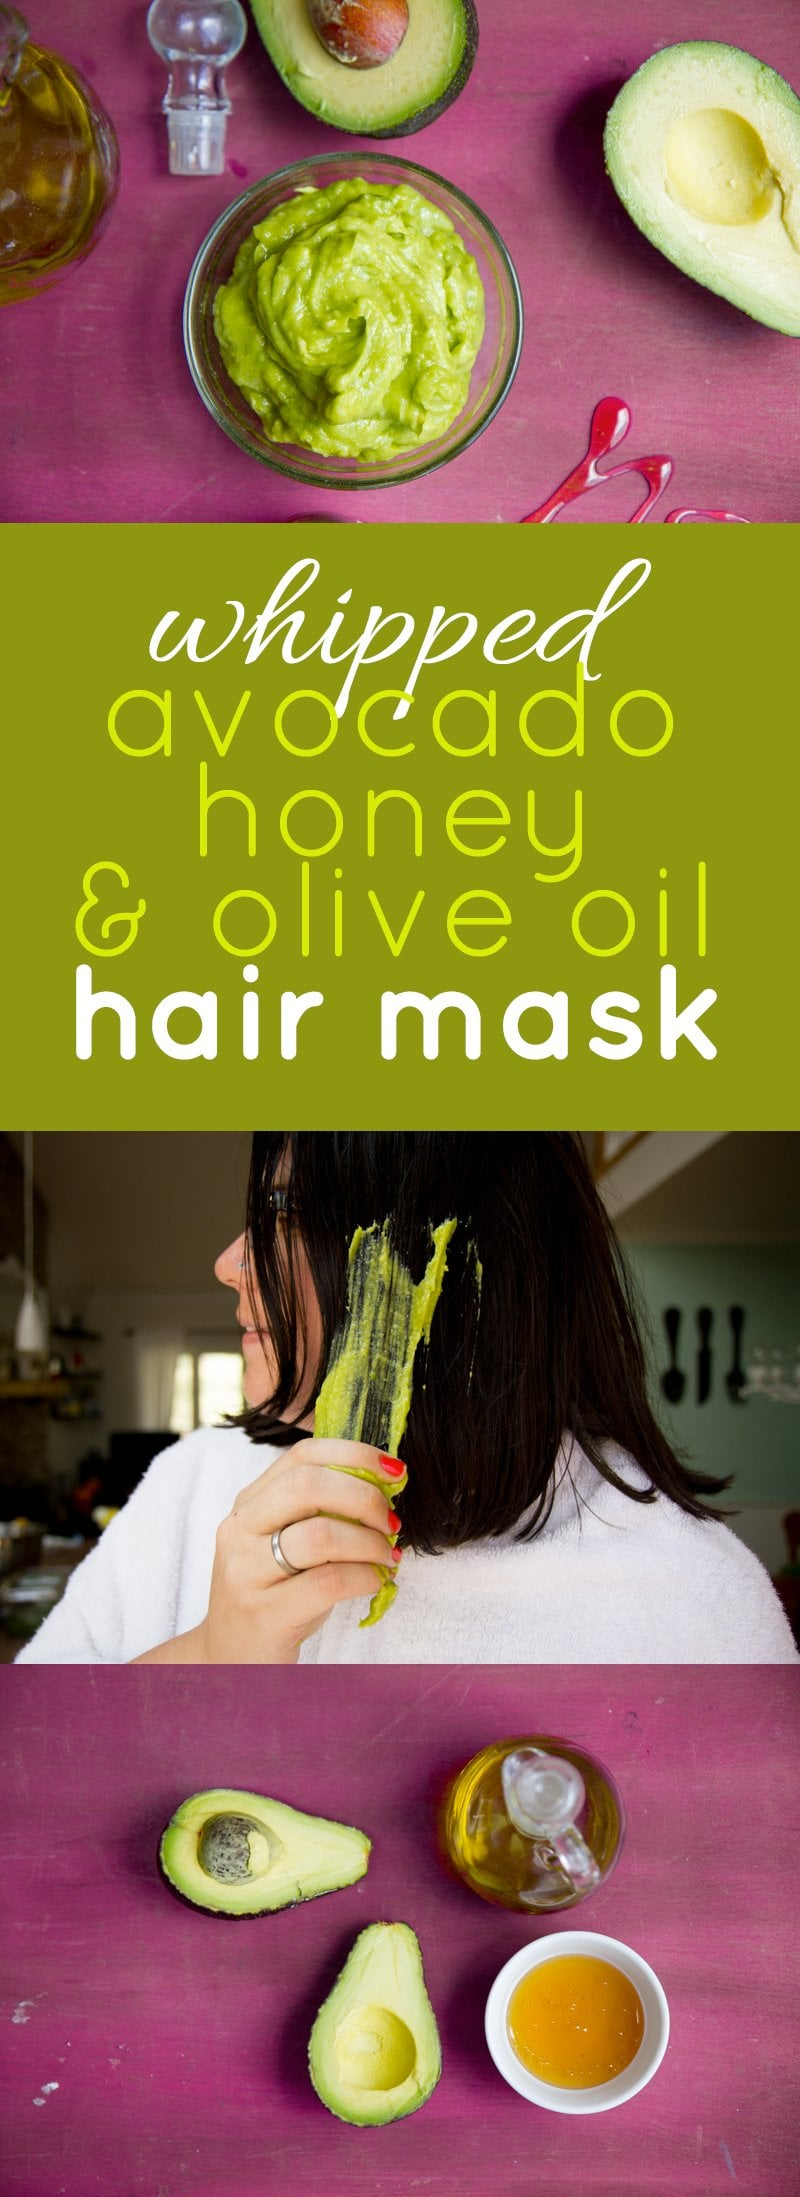 Whipped Avocado, Honey, and Olive Oil Hair Mask